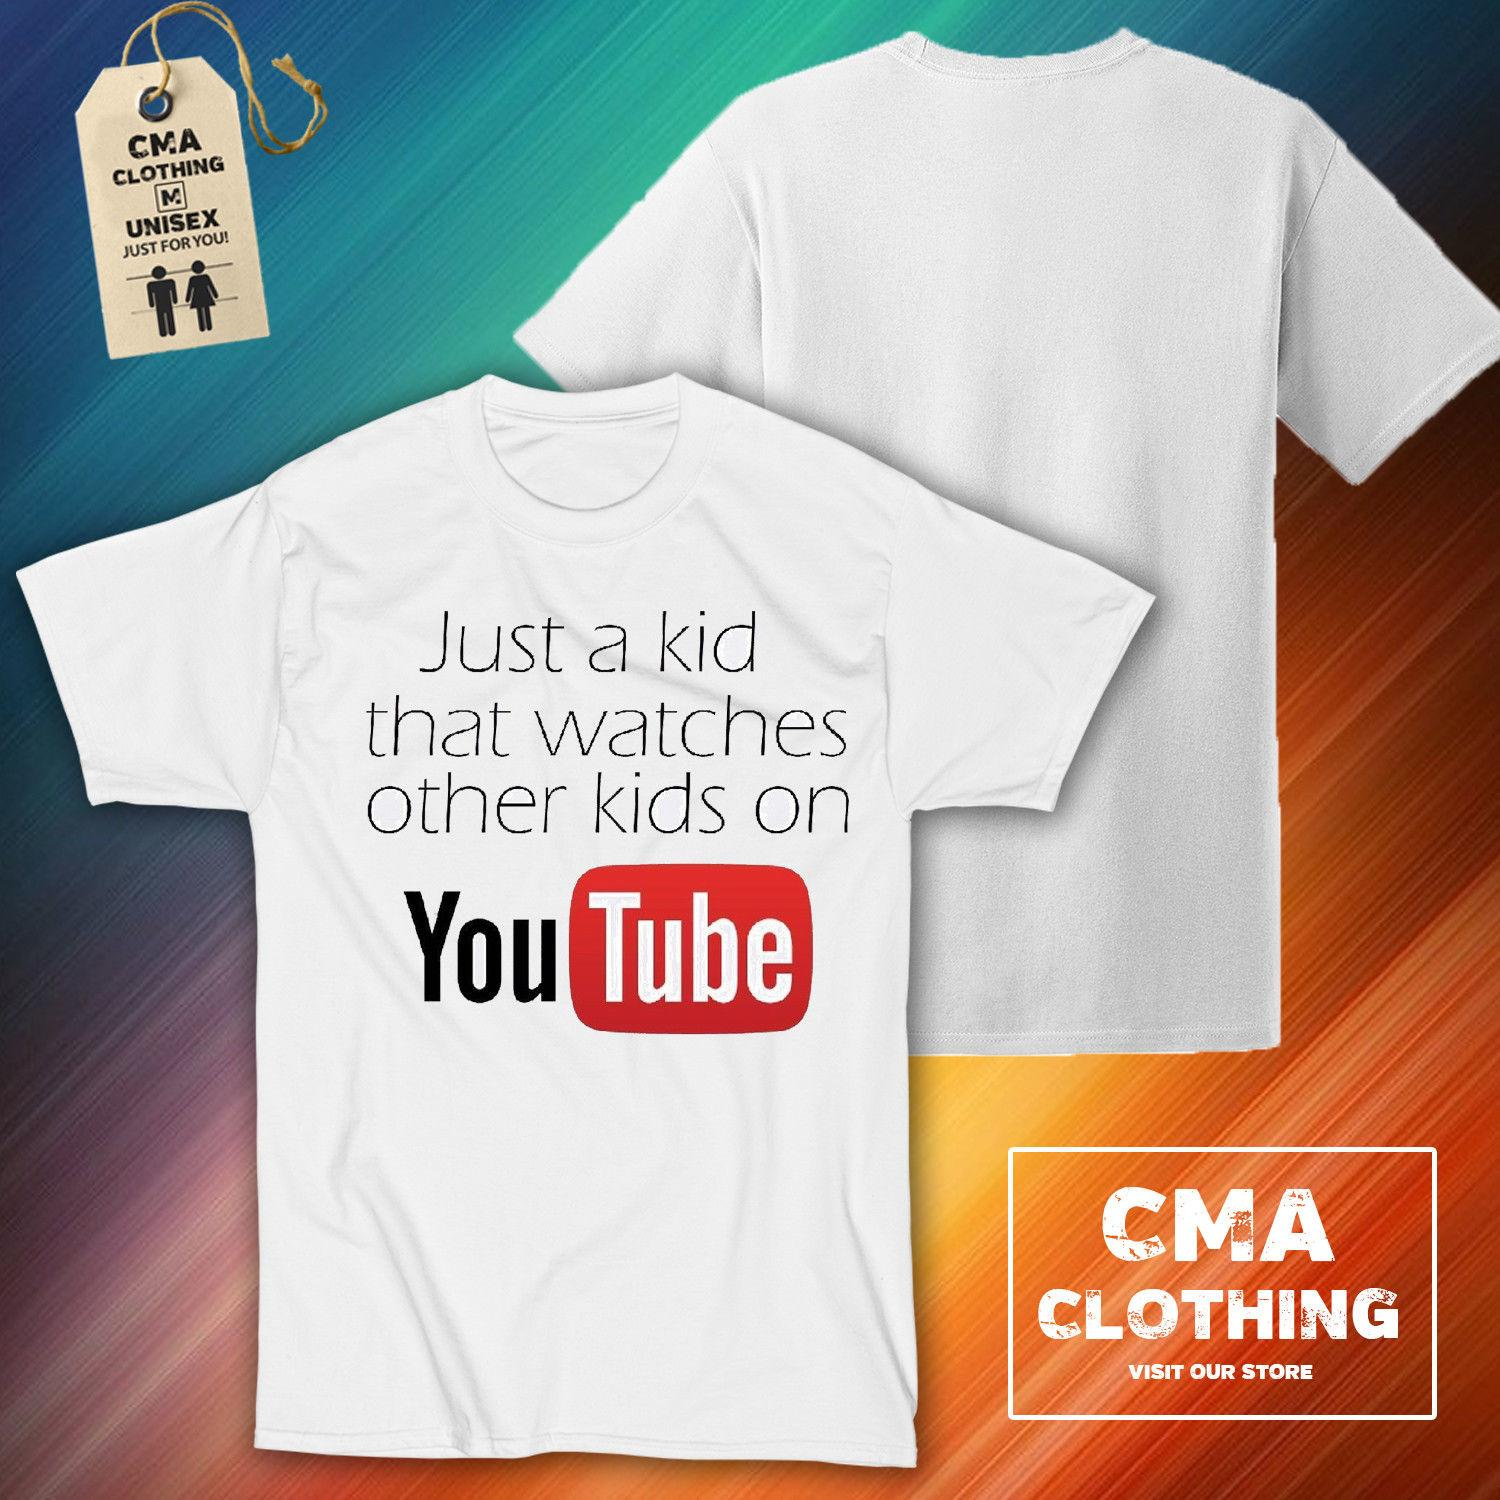 7e236742faef2 YOUTUBE Just A Kid That Watches Other Kids On You TubeCMA19 White Tee Funny  Unisex Casual Tshirt Top Hilarious T Shirts Designer T Shirt From  Happyjapanuk